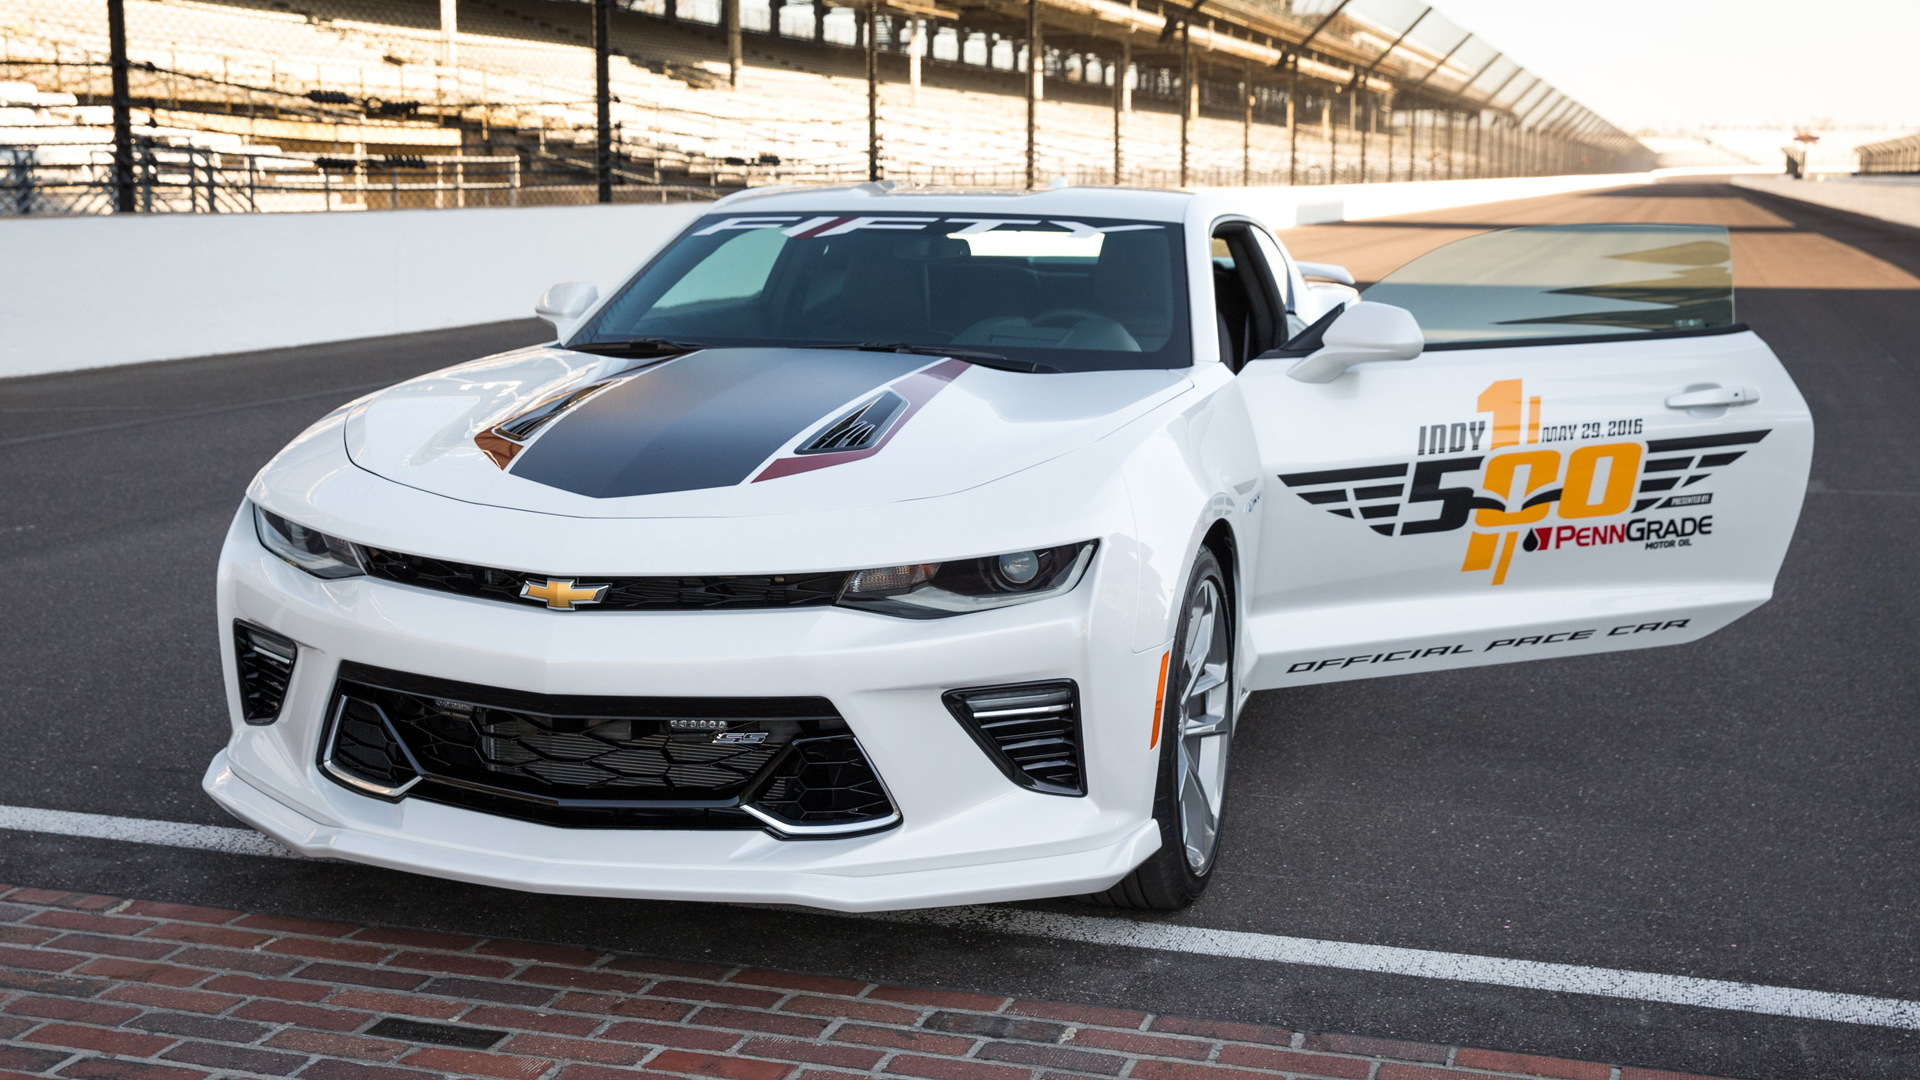 2017 Chevrolet Camaro SS 50th Anniversary Edition pace car for the 2016 Indianapolis 500